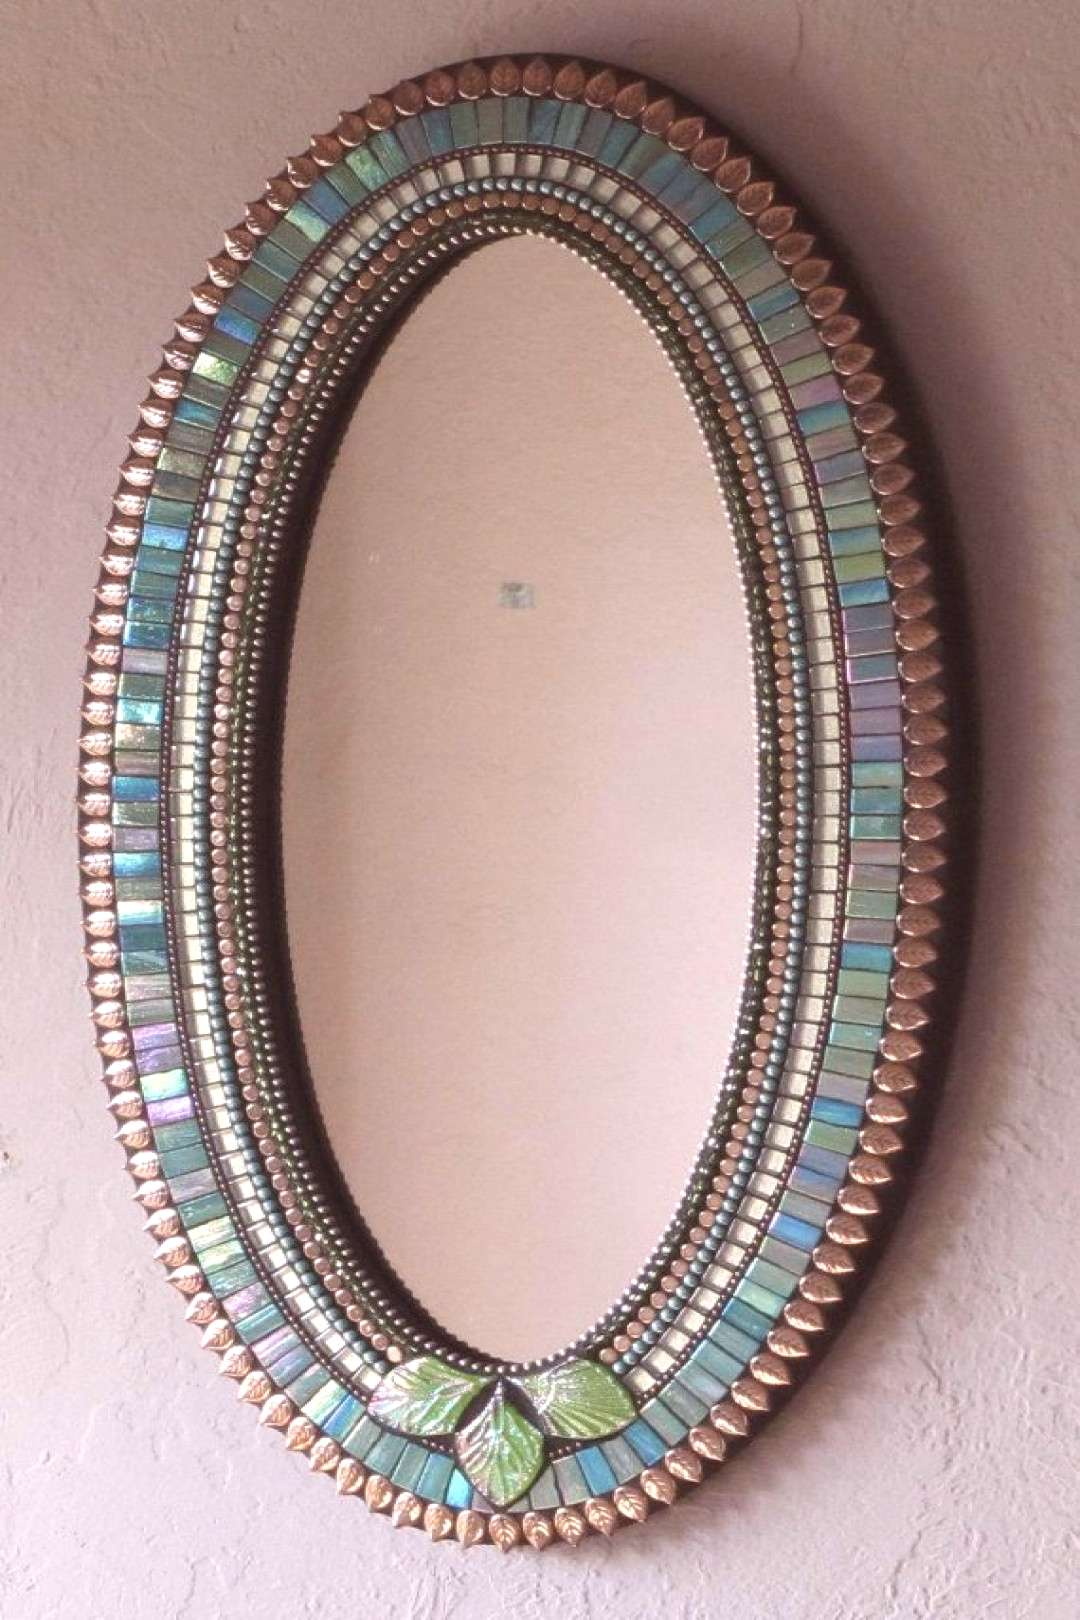 Blue Green and Copper Colored Mosaic Mirror by ChrissieDiller